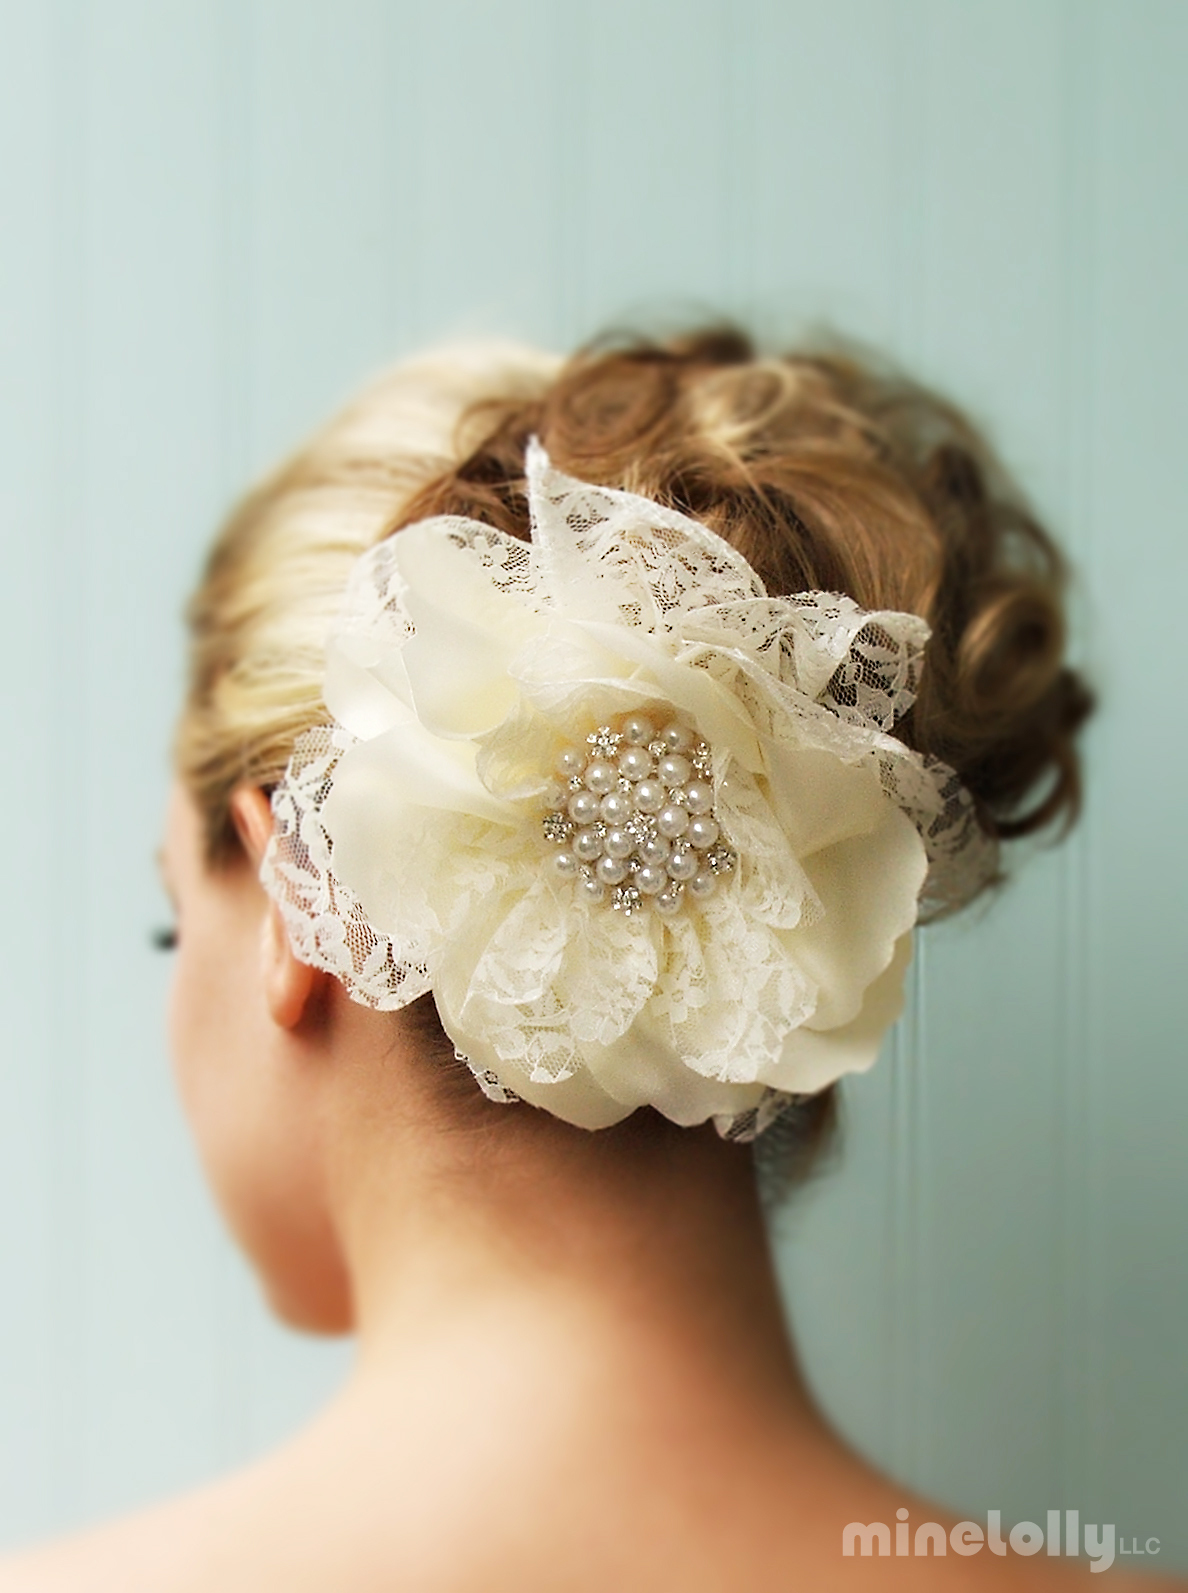 Beauty, Flowers & Decor, Updo, Flower, Hair, Lace, Cream, Fascinator, Piece, Minelolly